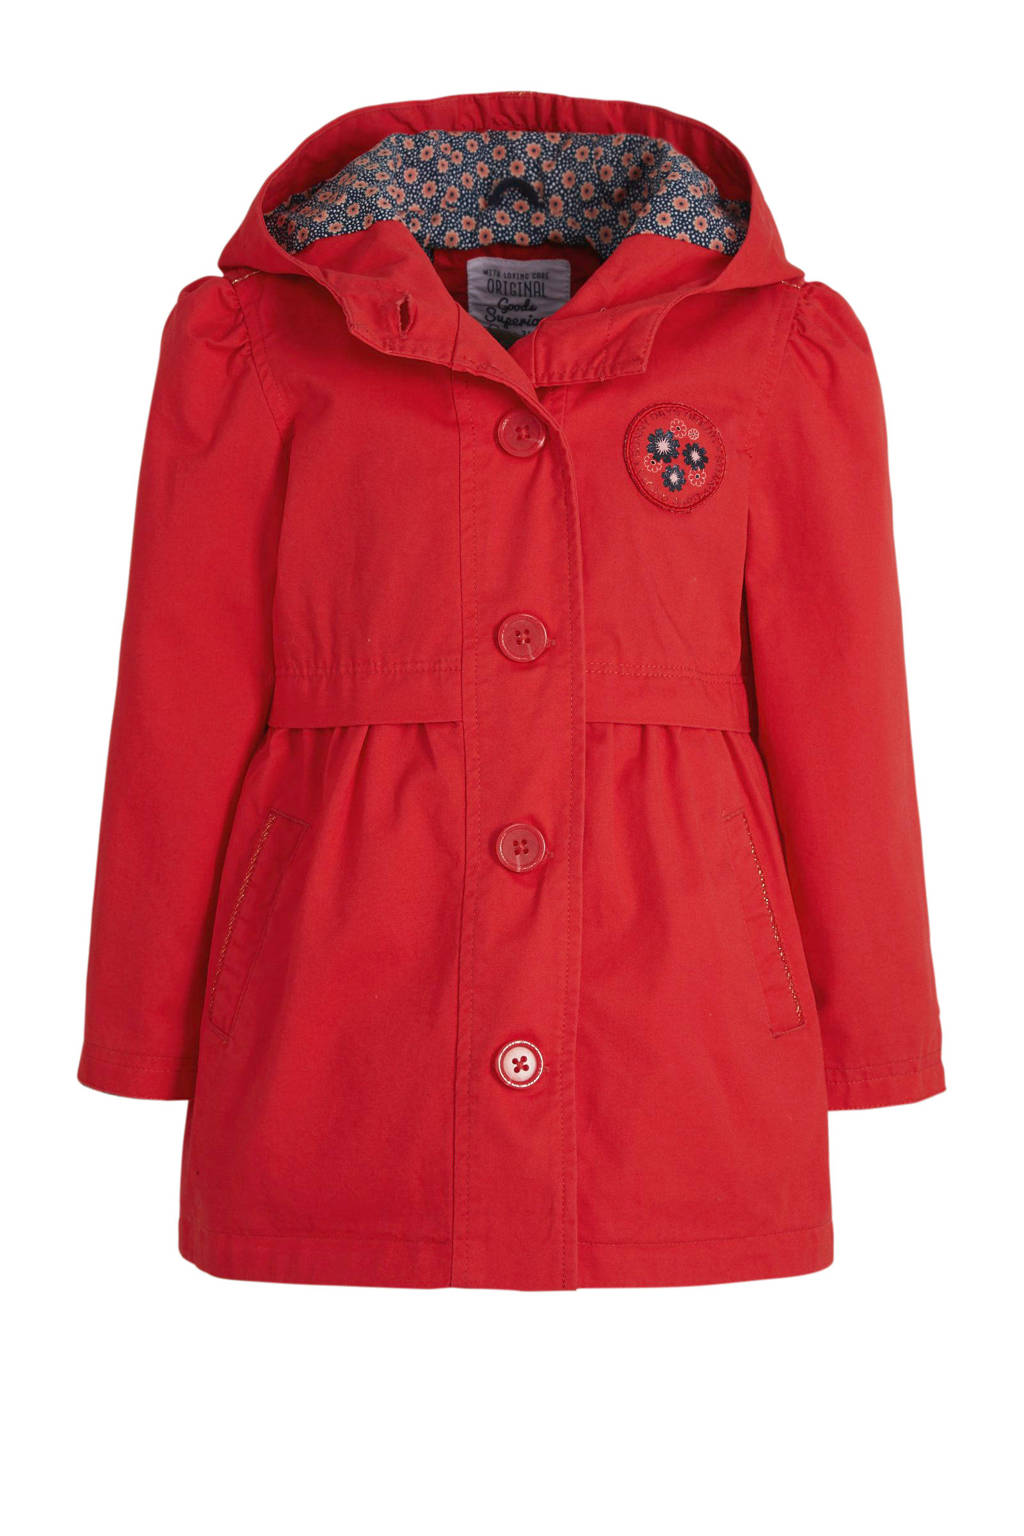 C&A Palomino zomerjas rood/donkerblauw/wit, Rood/donkerblauw/wit